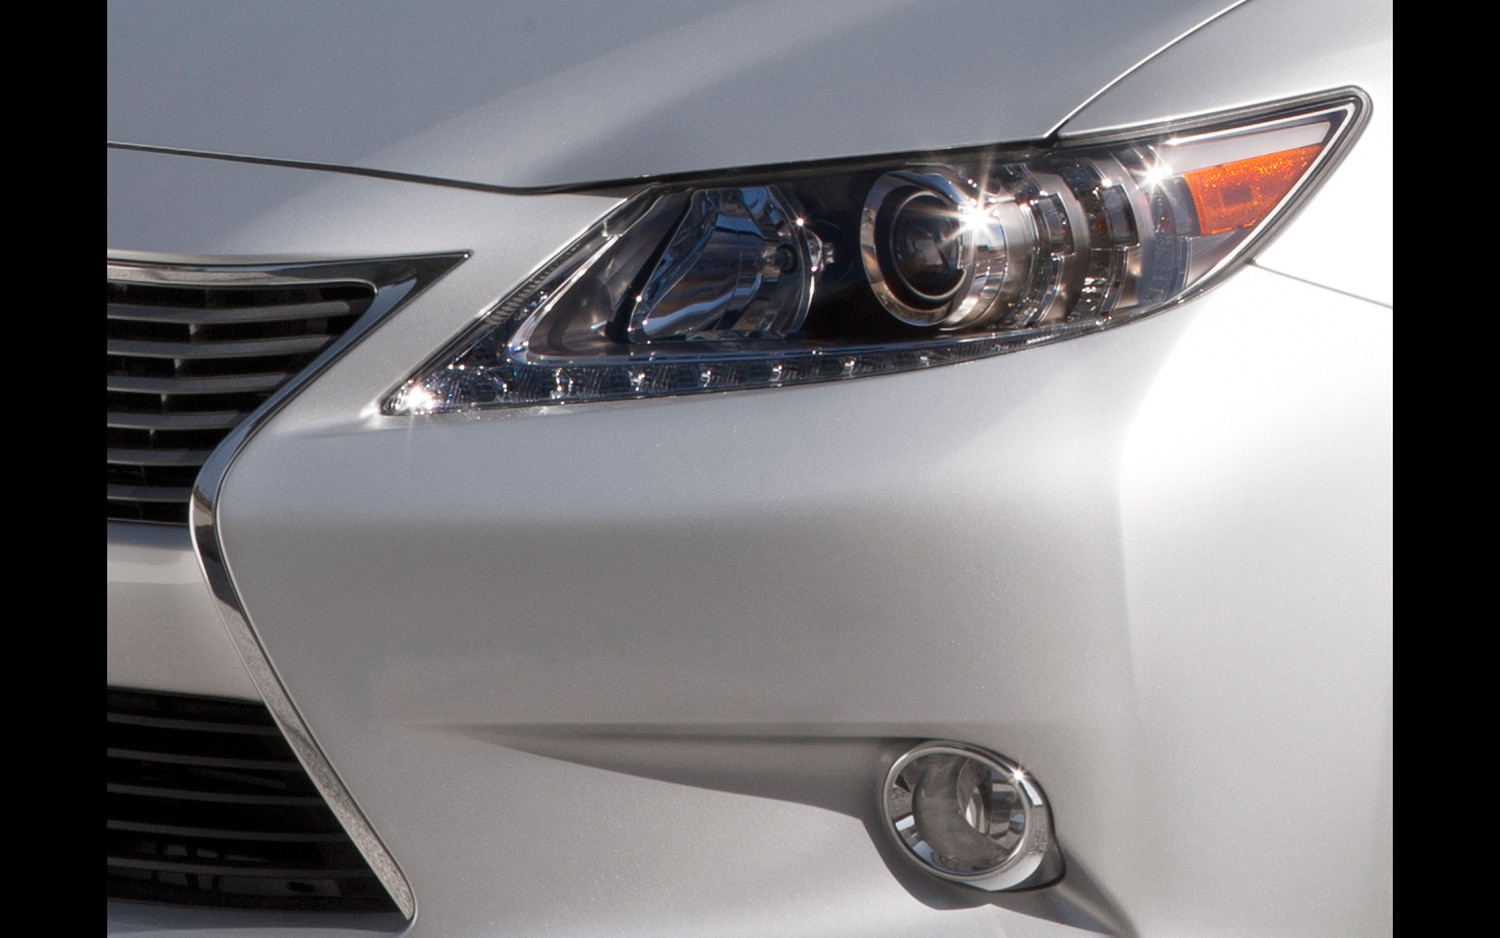 2013 Lexus ES Teaser Headlight And Grille11